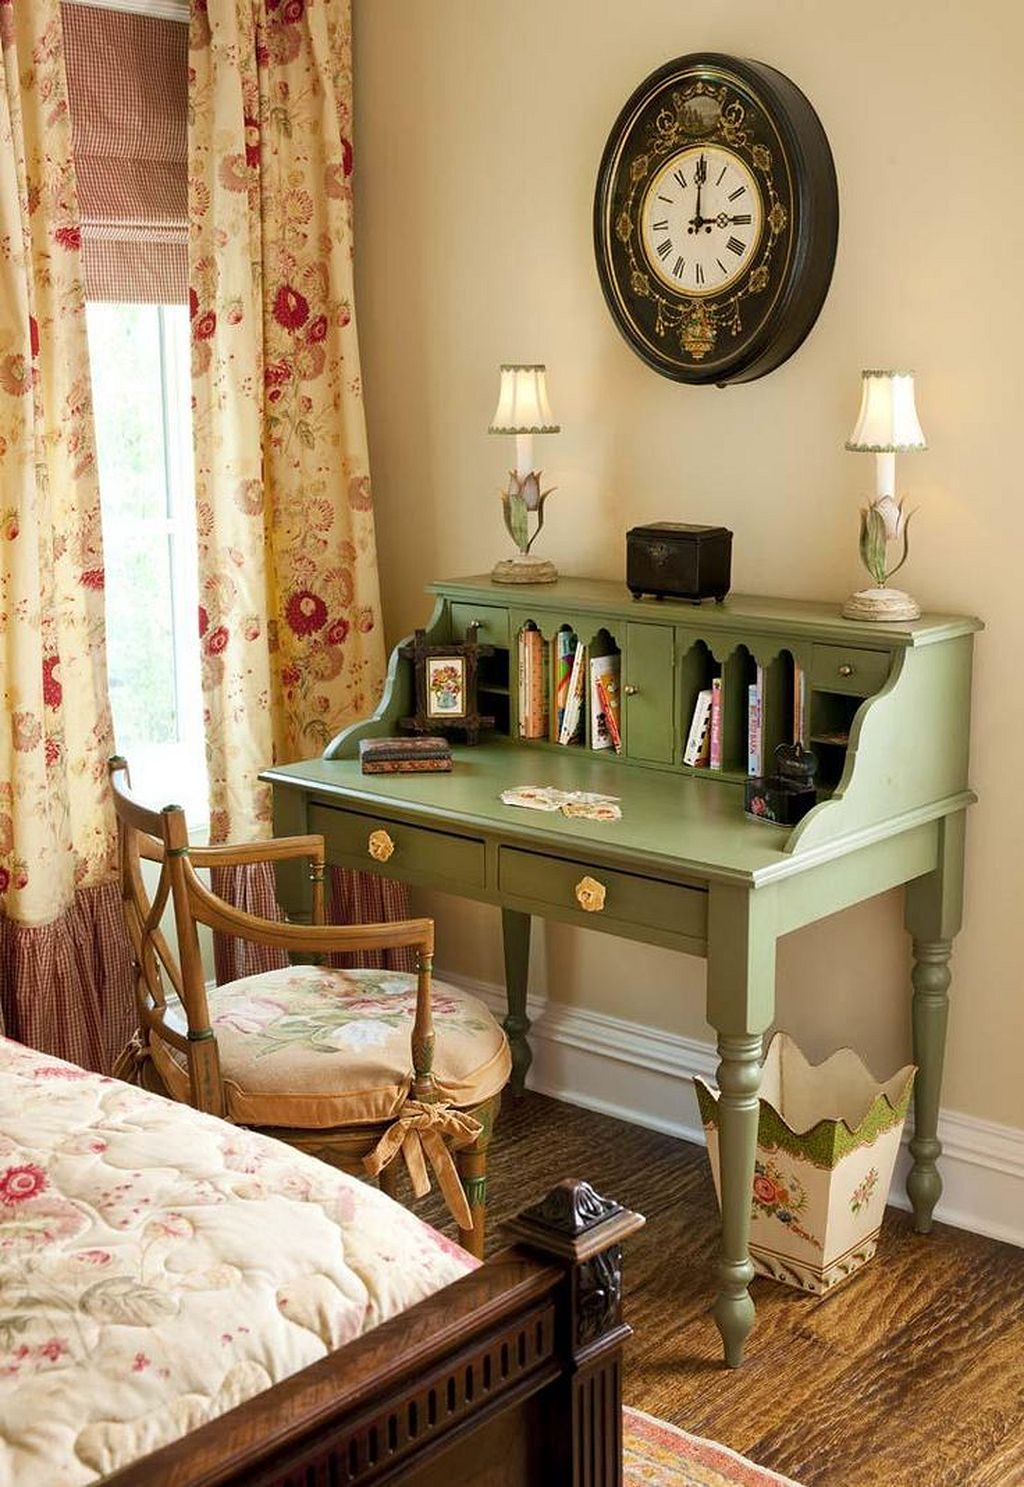 18 Images Of English Country Home Decor Ideas Decor